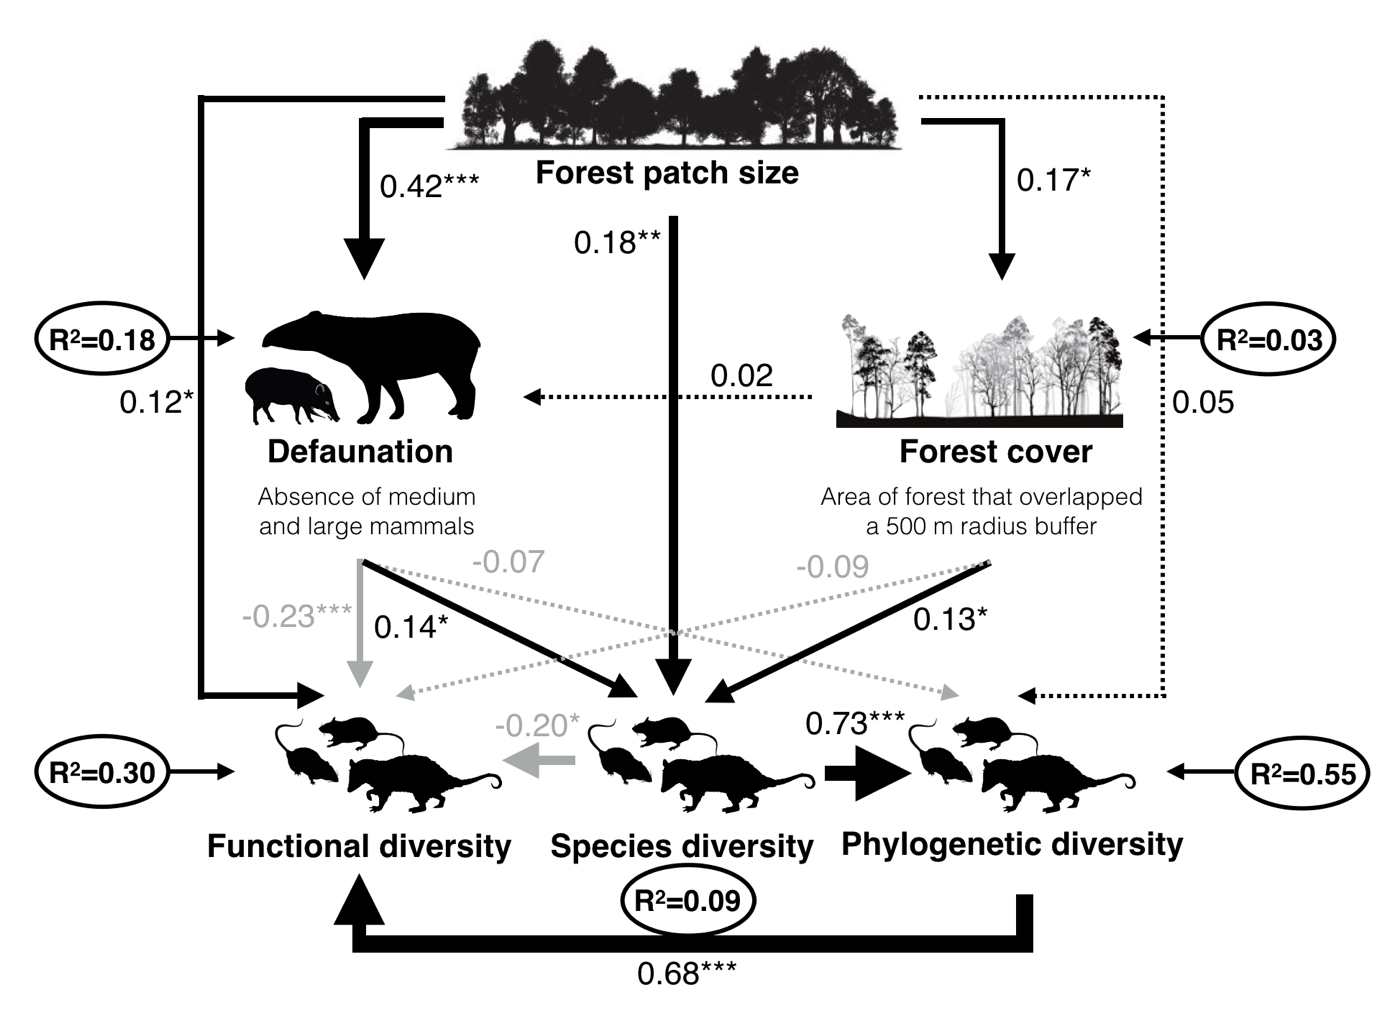 Defaunation and fragmentation erode small mammal diversity